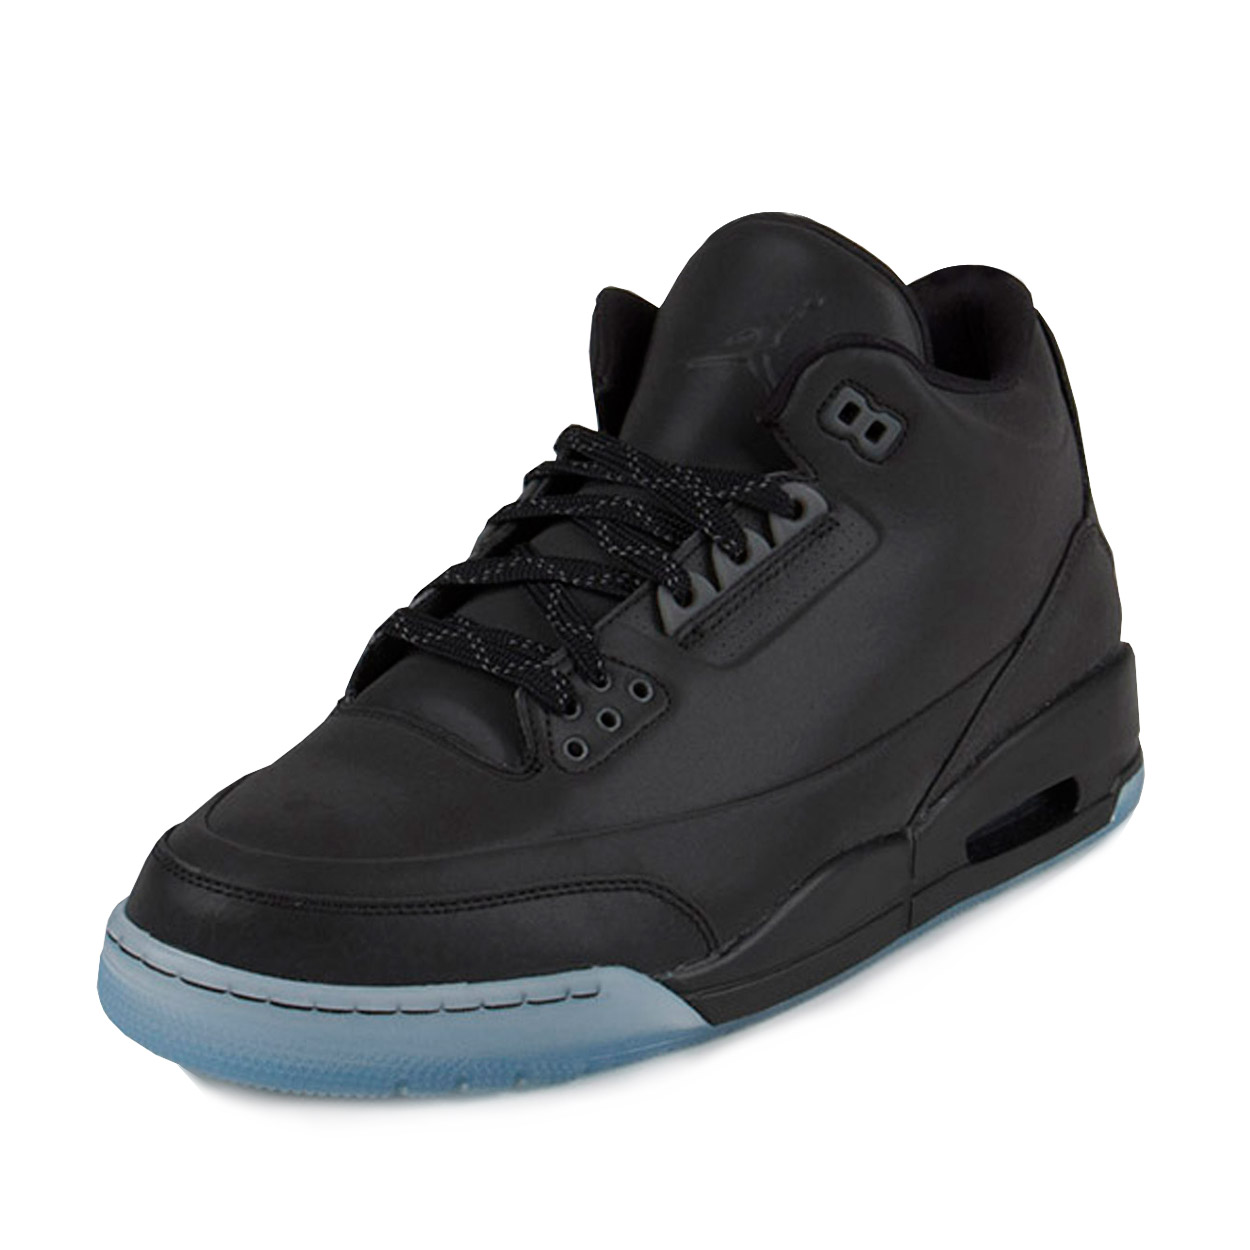 9d4267453c5d4a netherlands air jordan 5lab3 reflective silver 3 f30b9 d989f  sale nike  mens air jordan 5lab3 dark reflective black clear 631603 010 walmart a9223  ef4c2